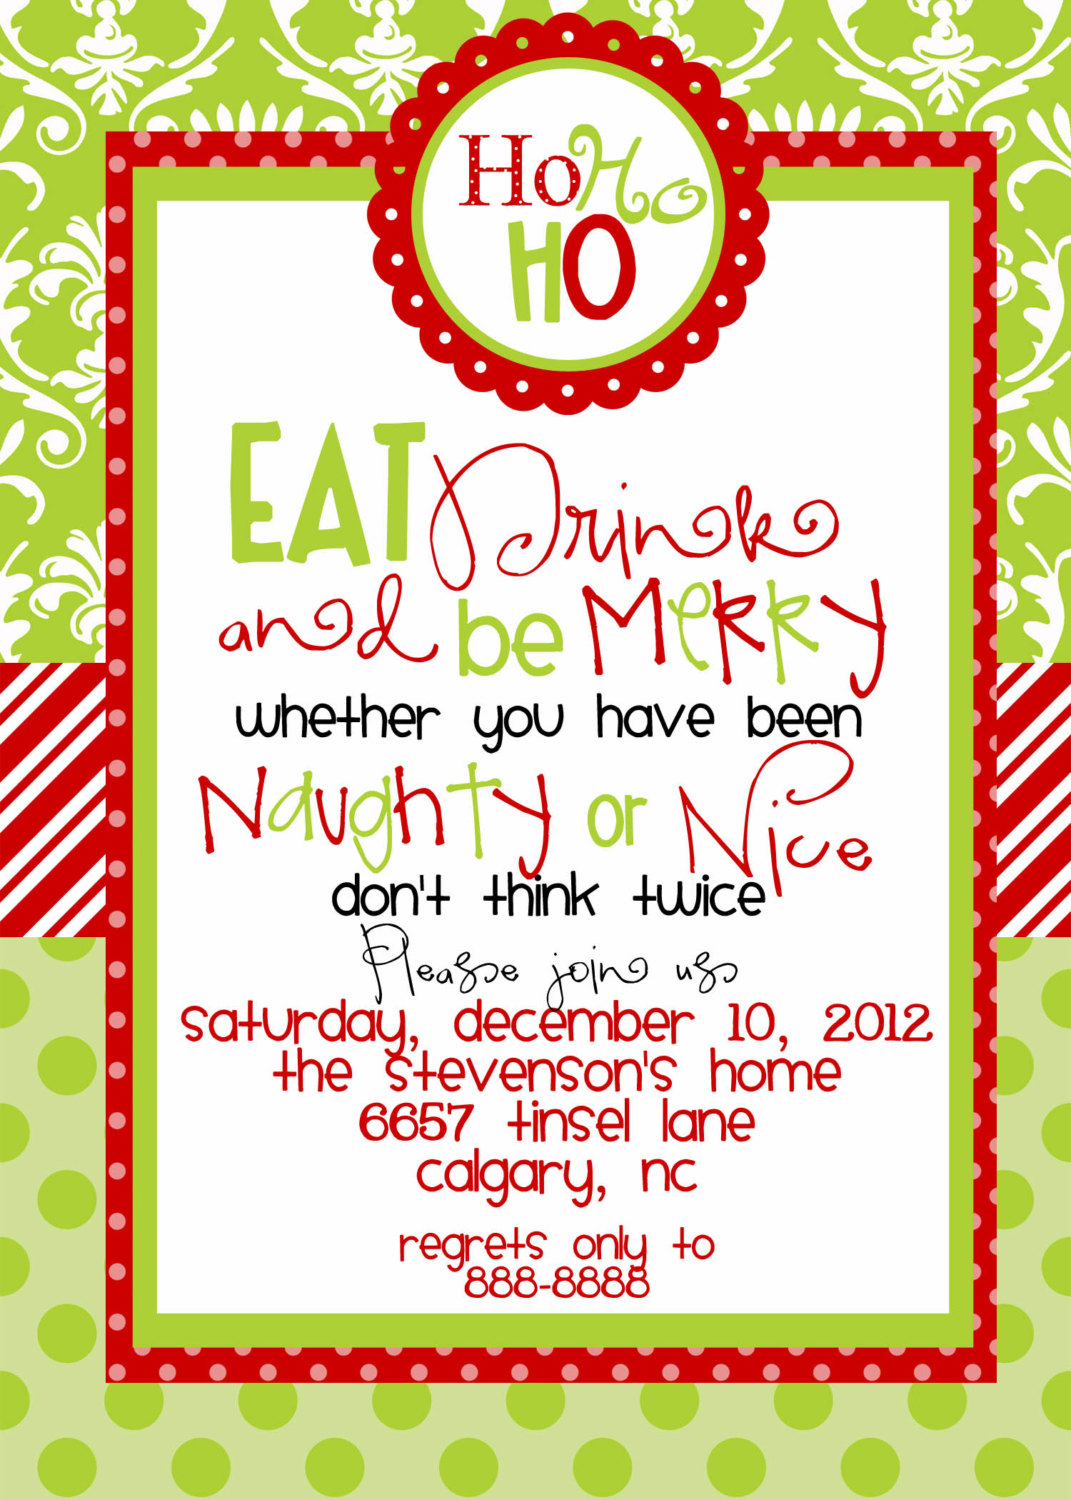 Christmas Party Invitation Poem - Mickey Mouse Invitations Templates